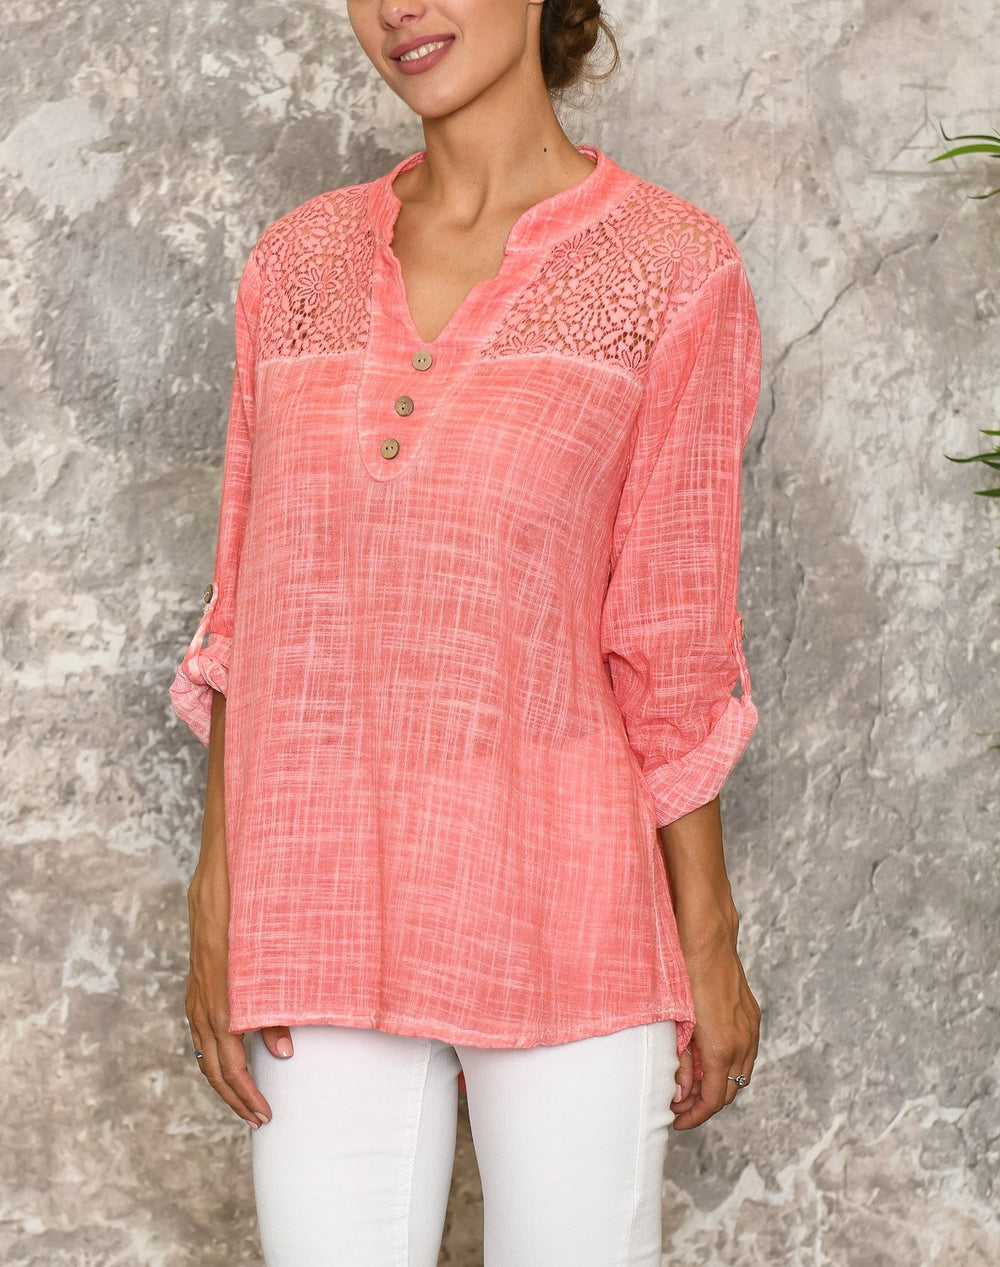 Annika bluse bright coral - Online-Mode